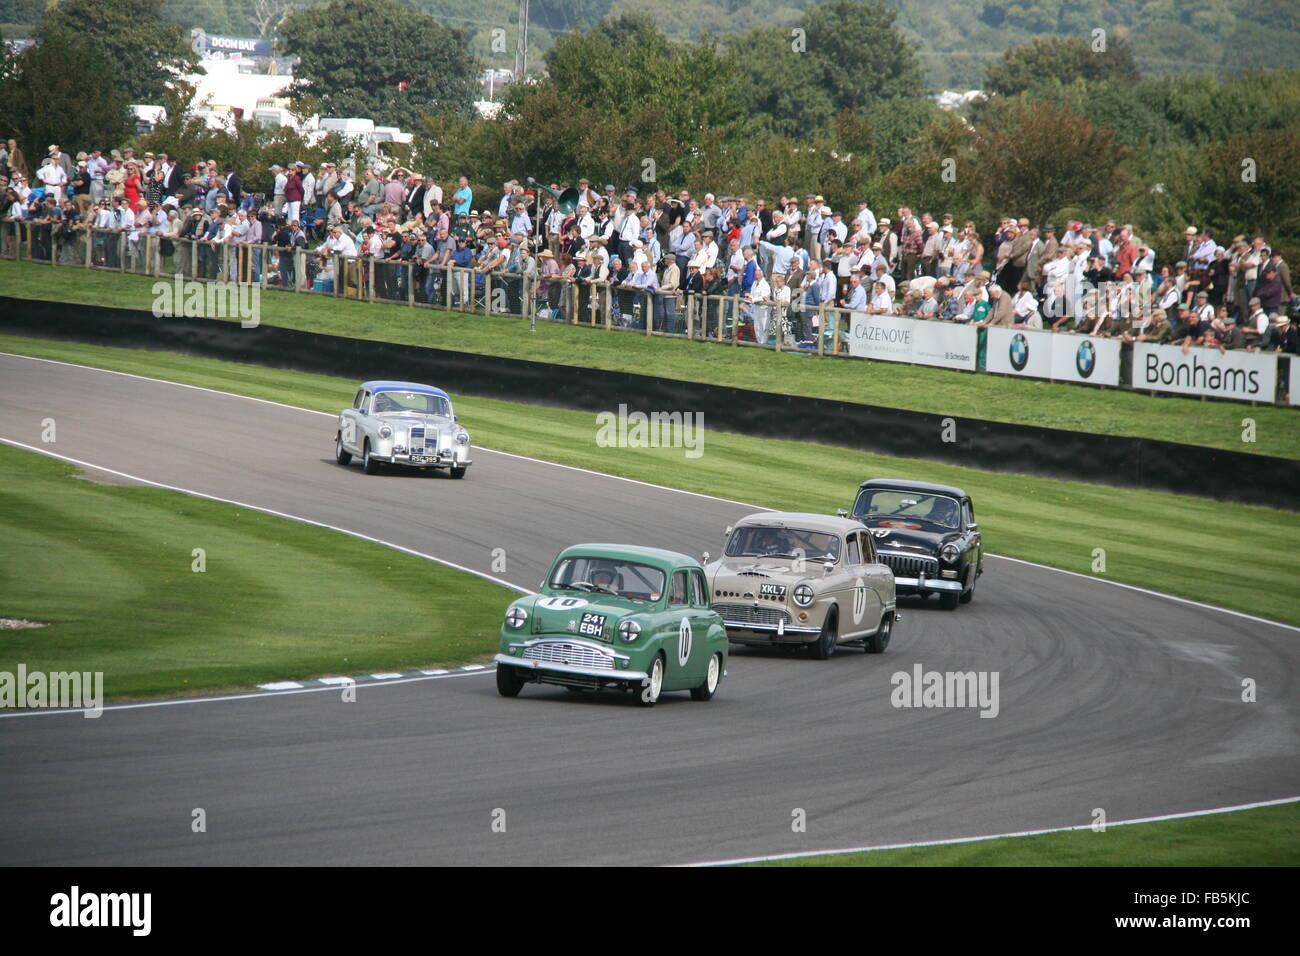 OLDTIMER RENNWAGEN BEIM GOODWOOD REVIVAL Stockbild